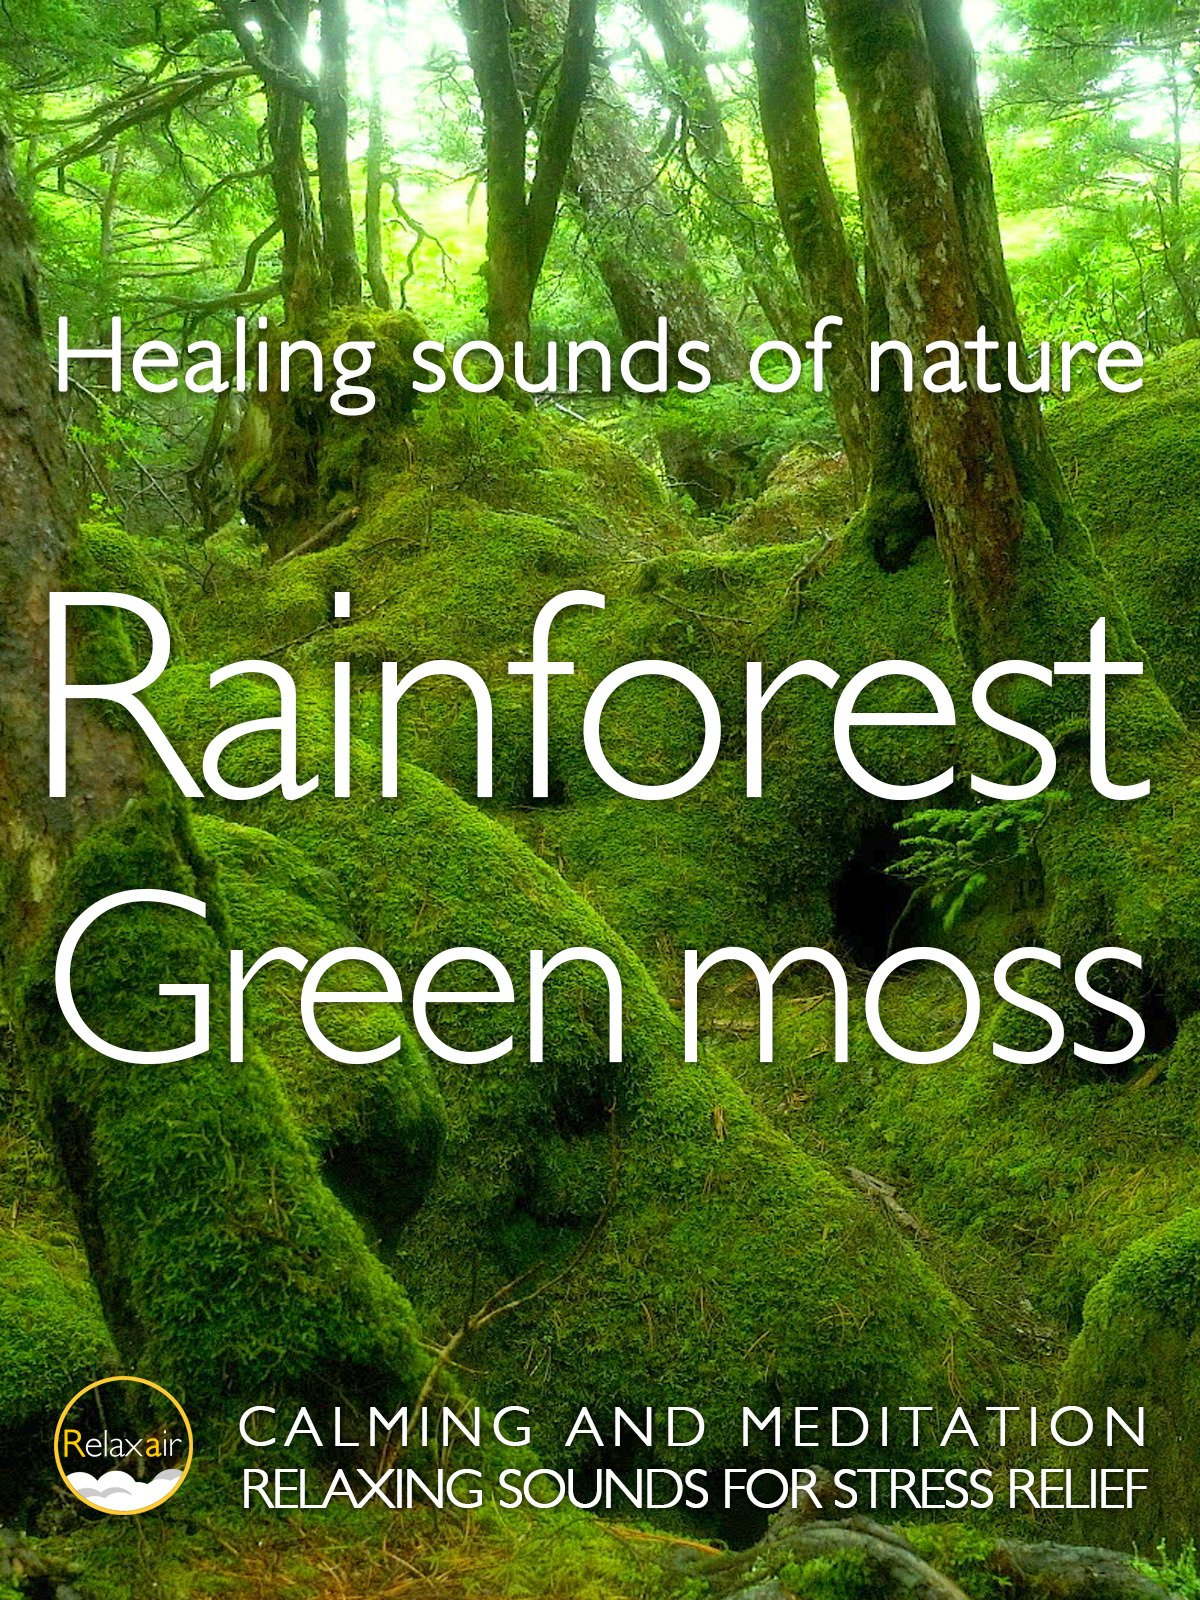 Healing Sound of Nature Rainforest Green moss Calming and Meditation Relaxing Sound for Stress relief